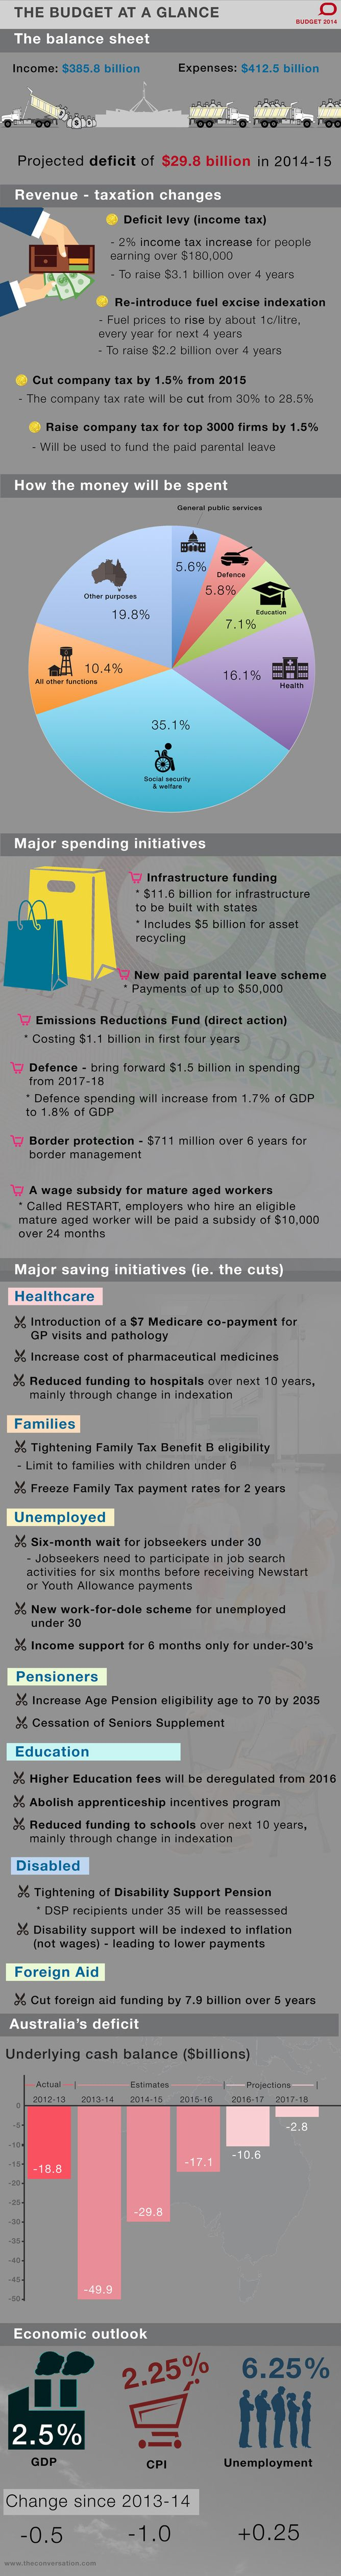 Infographic: 2014 federal budget at a glance. #budget2014